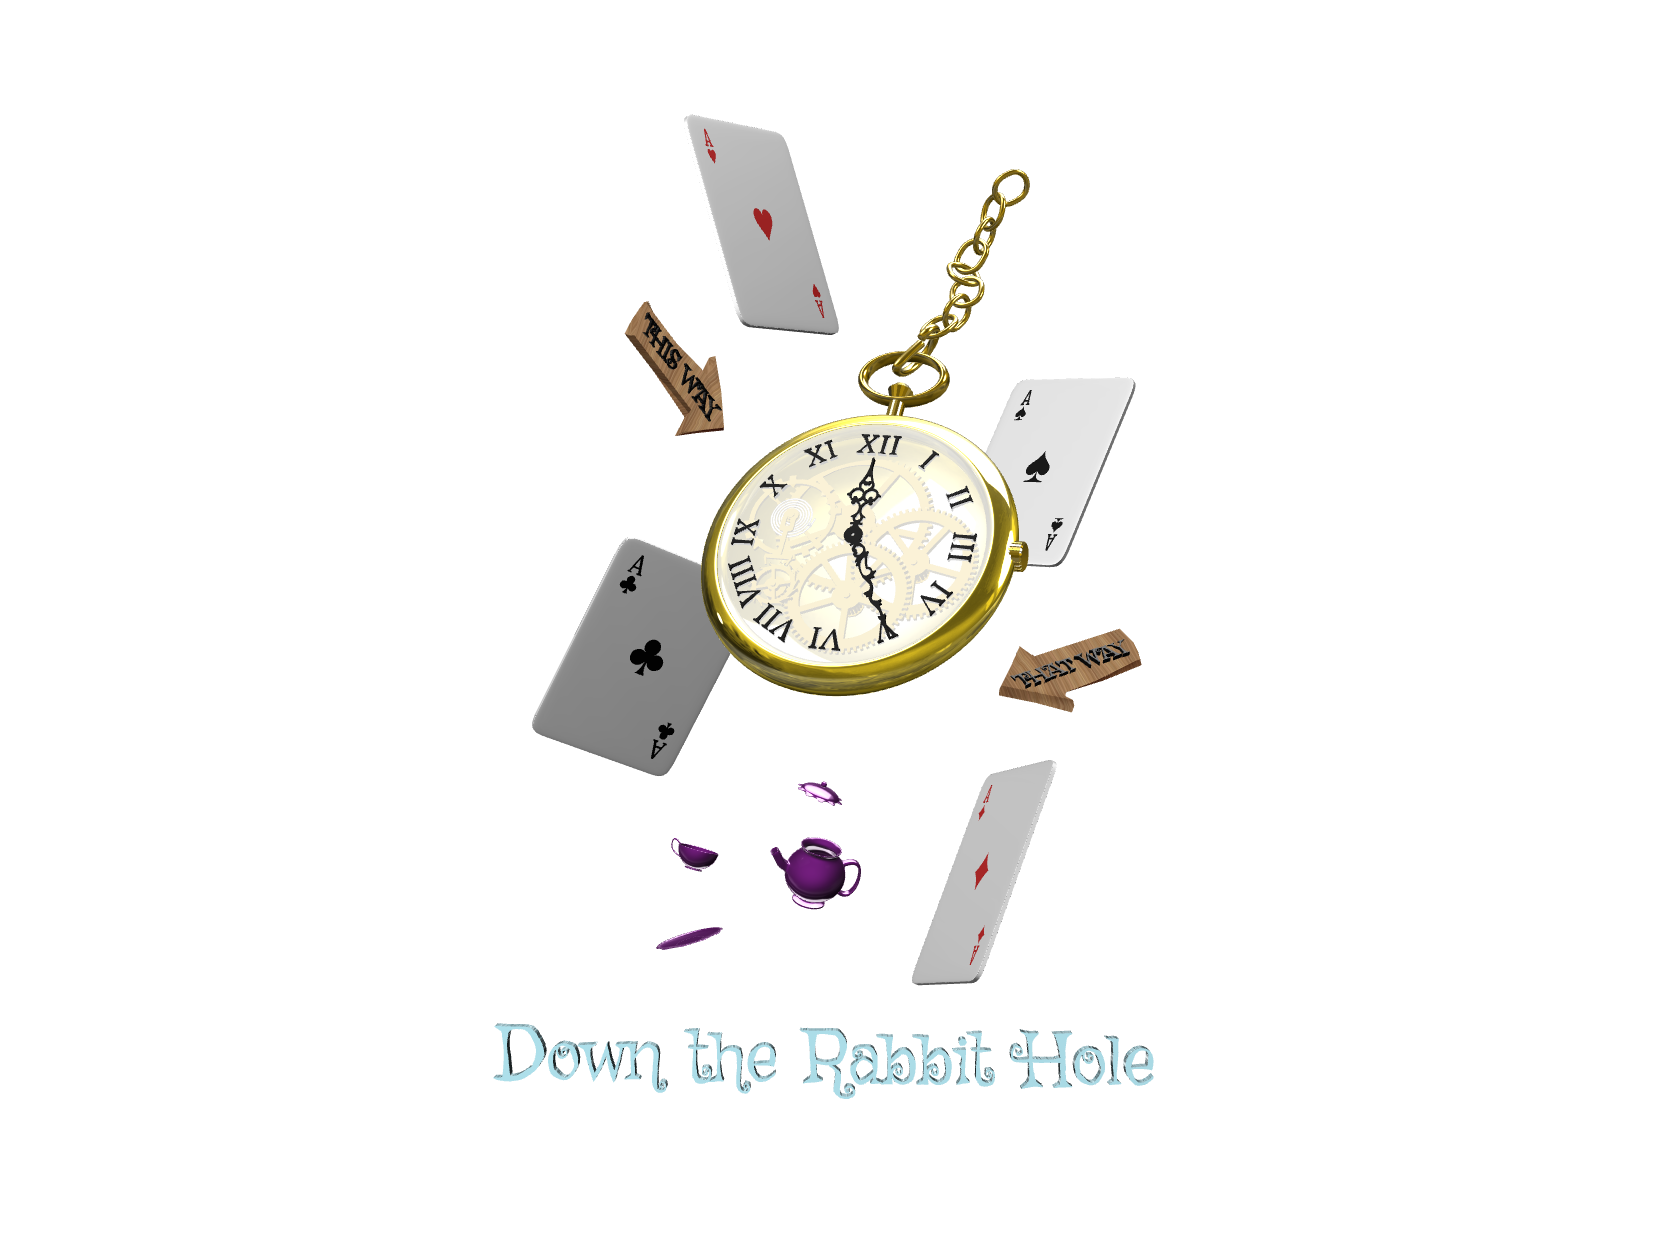 Down the Rabbit Hole - 3D design by Rei.T May 1, 2018